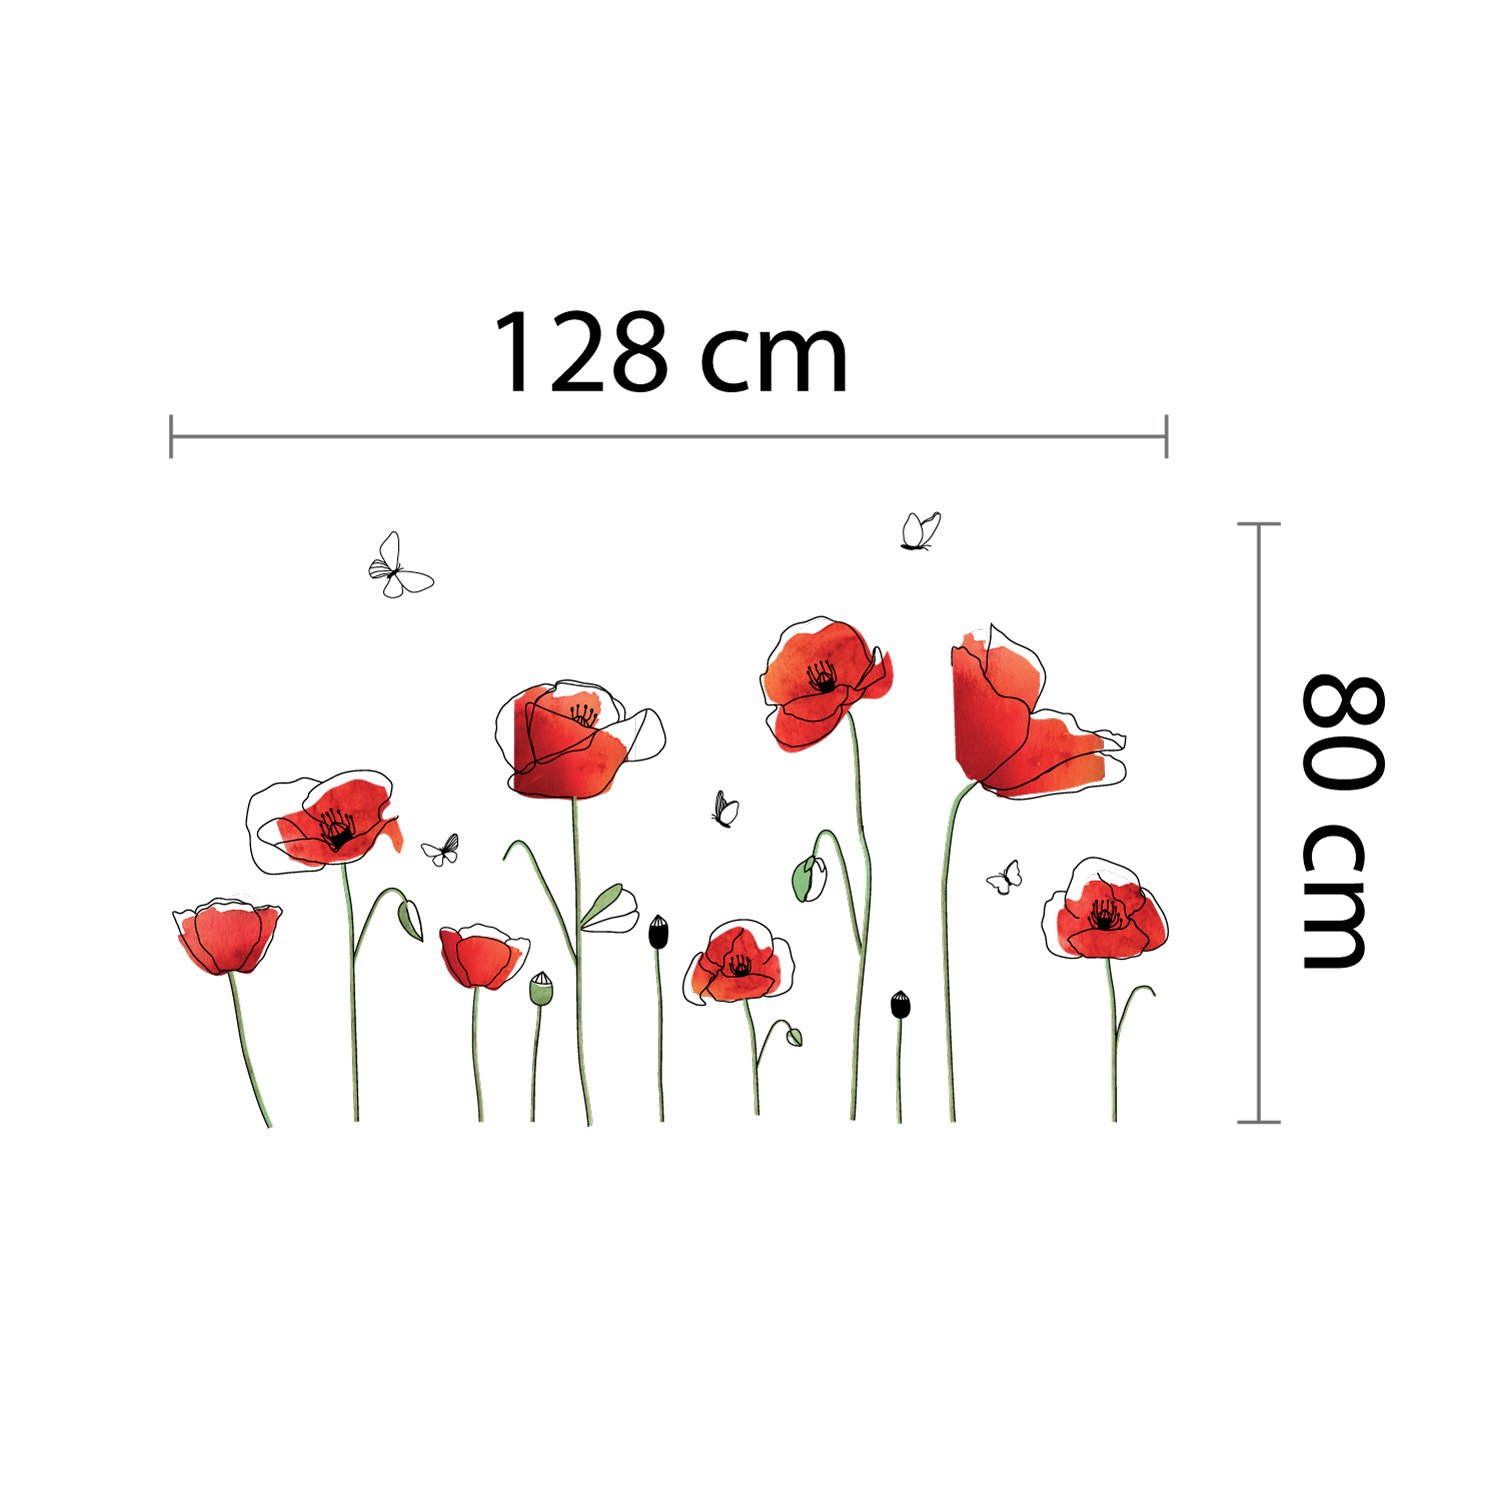 Wall Stickers''Poppy Butter'' Wall Murals Removable Self-Adhesive Decals art Nursery Kindergarden School Kids Room Restaurant Bar Cafe Hotel Home Decoration